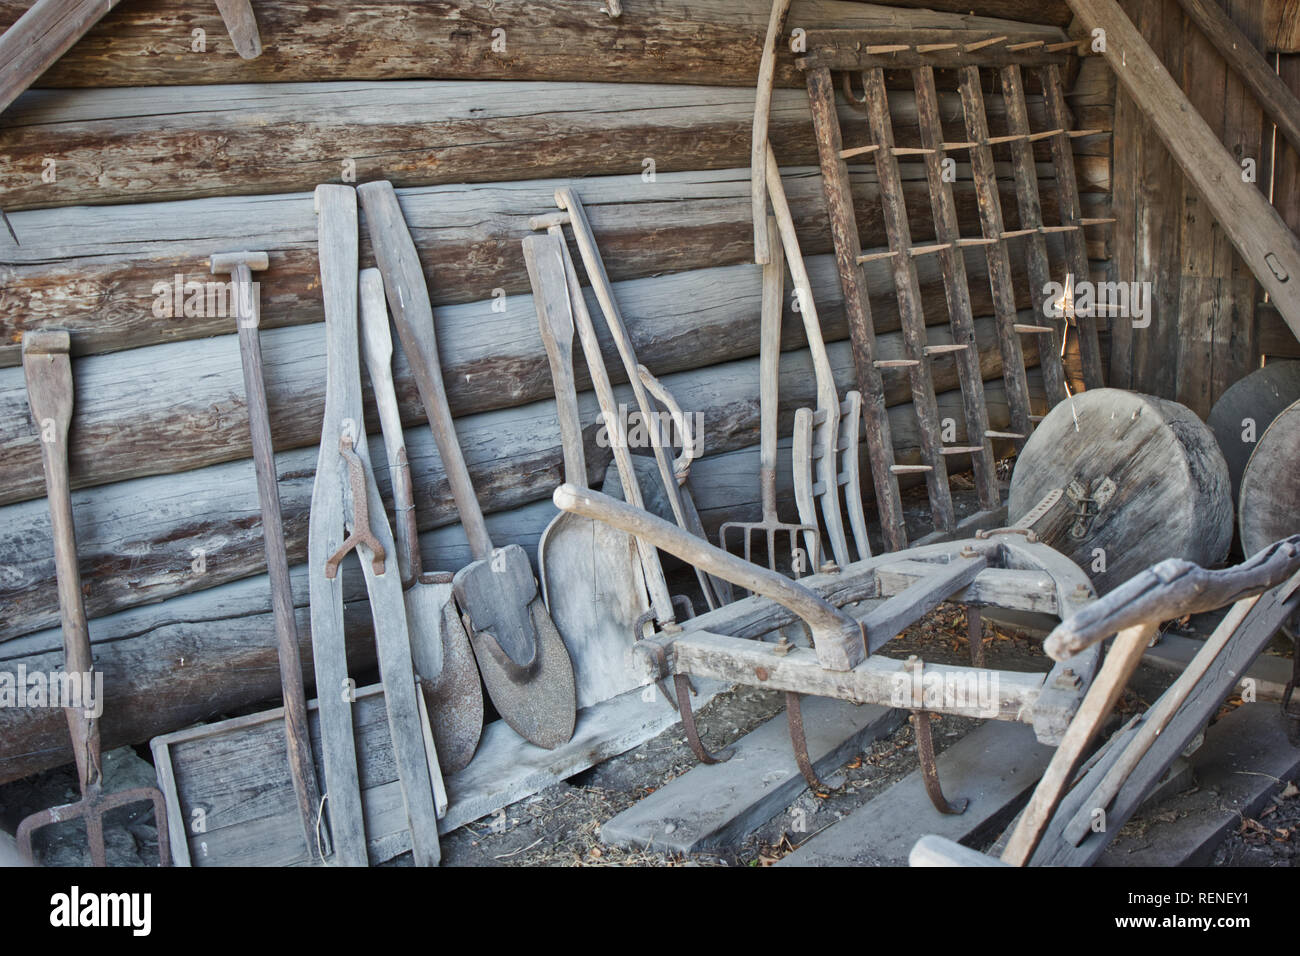 Farming implements and tools in storehouse, Alvros Farmstead, Skansen open-air museum, Djurgarden, Stockholm, Sweden, Scandinavia - Stock Image